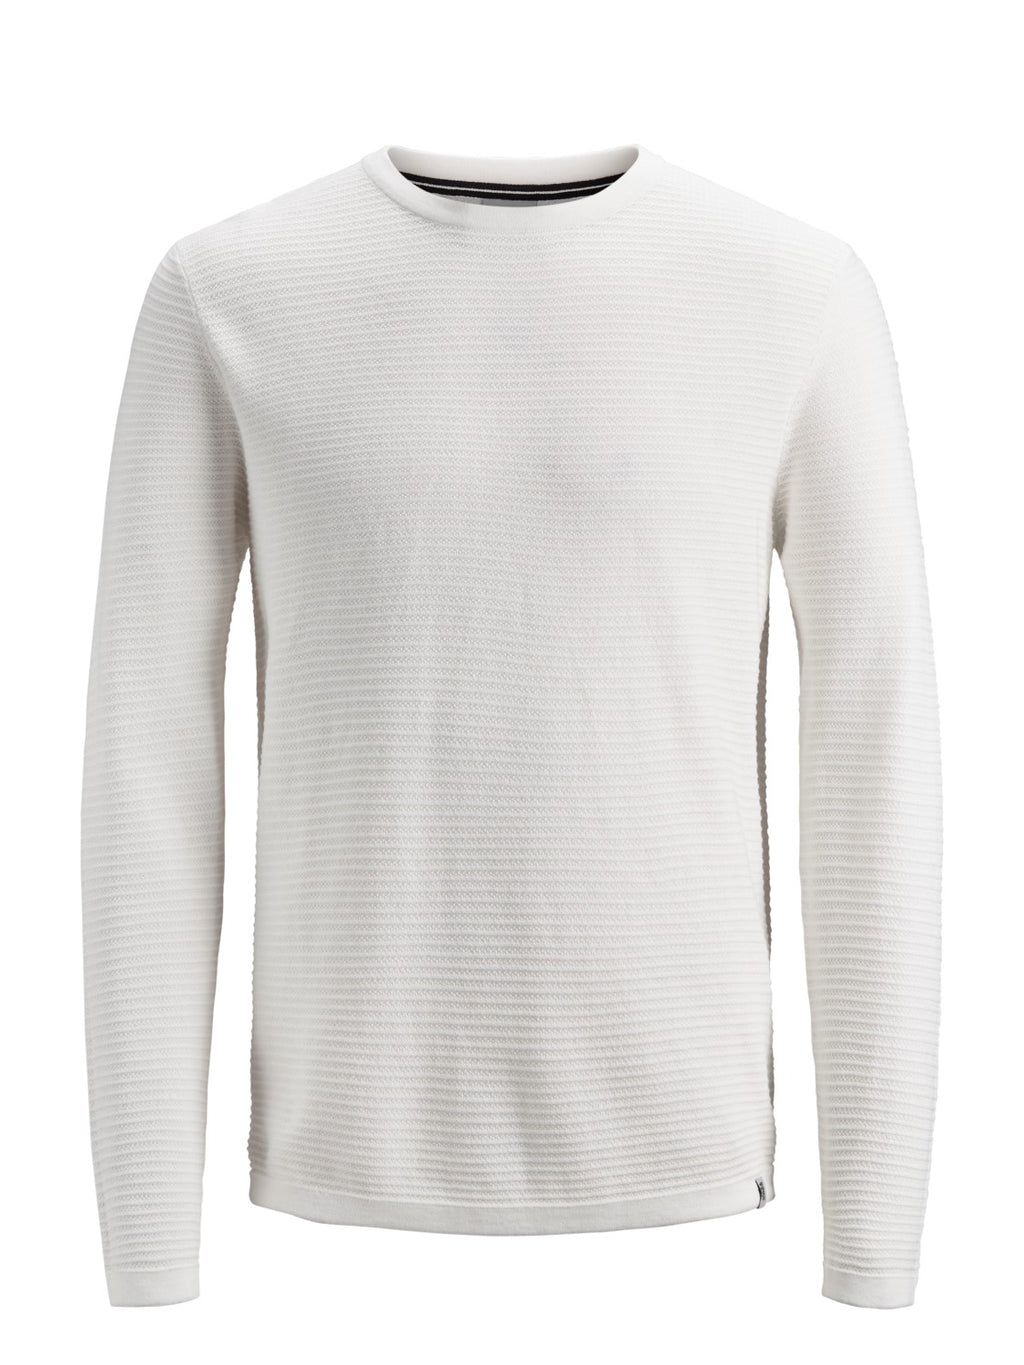 Jcospring Knit Crew Neck